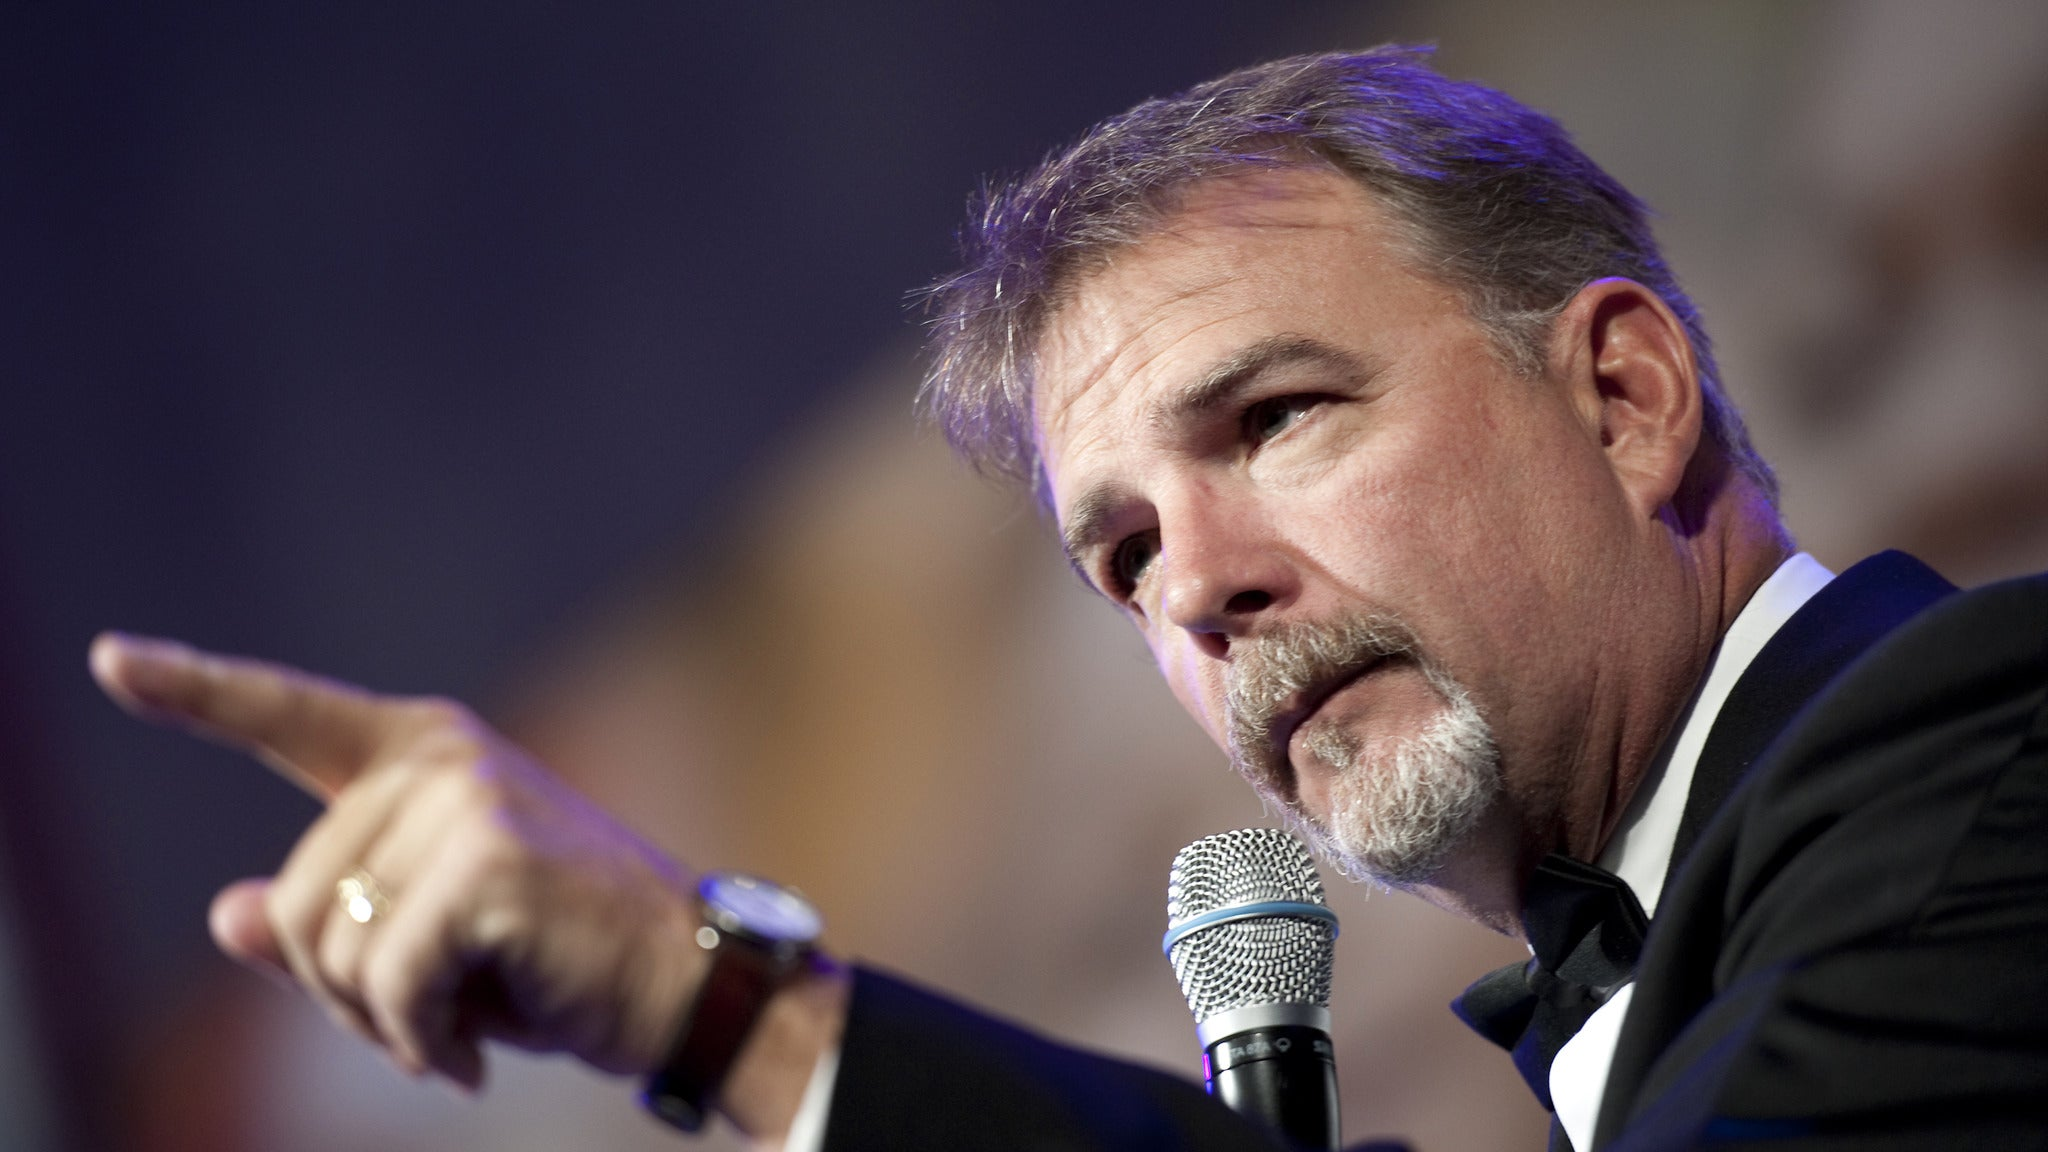 Bill Engvall at Dow Event Center